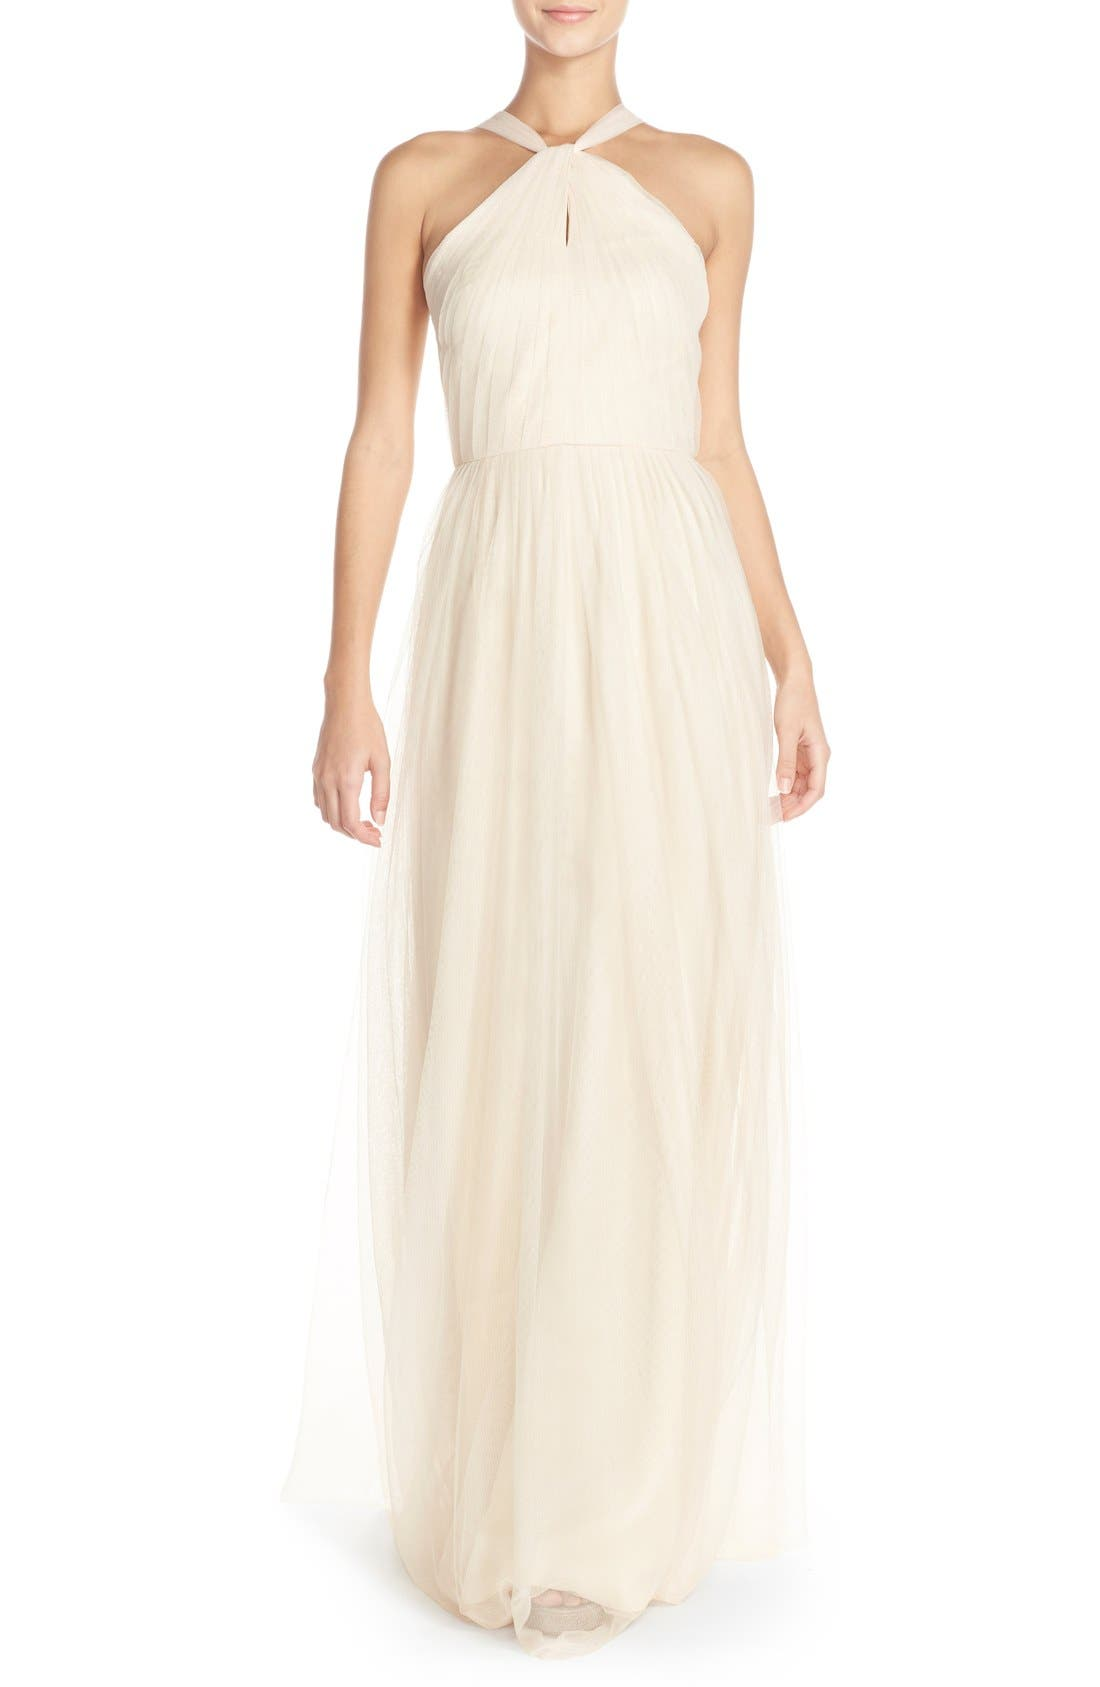 Main Image - Donna Morgan 'Ava' Halter Style Mesh A-Line Gown